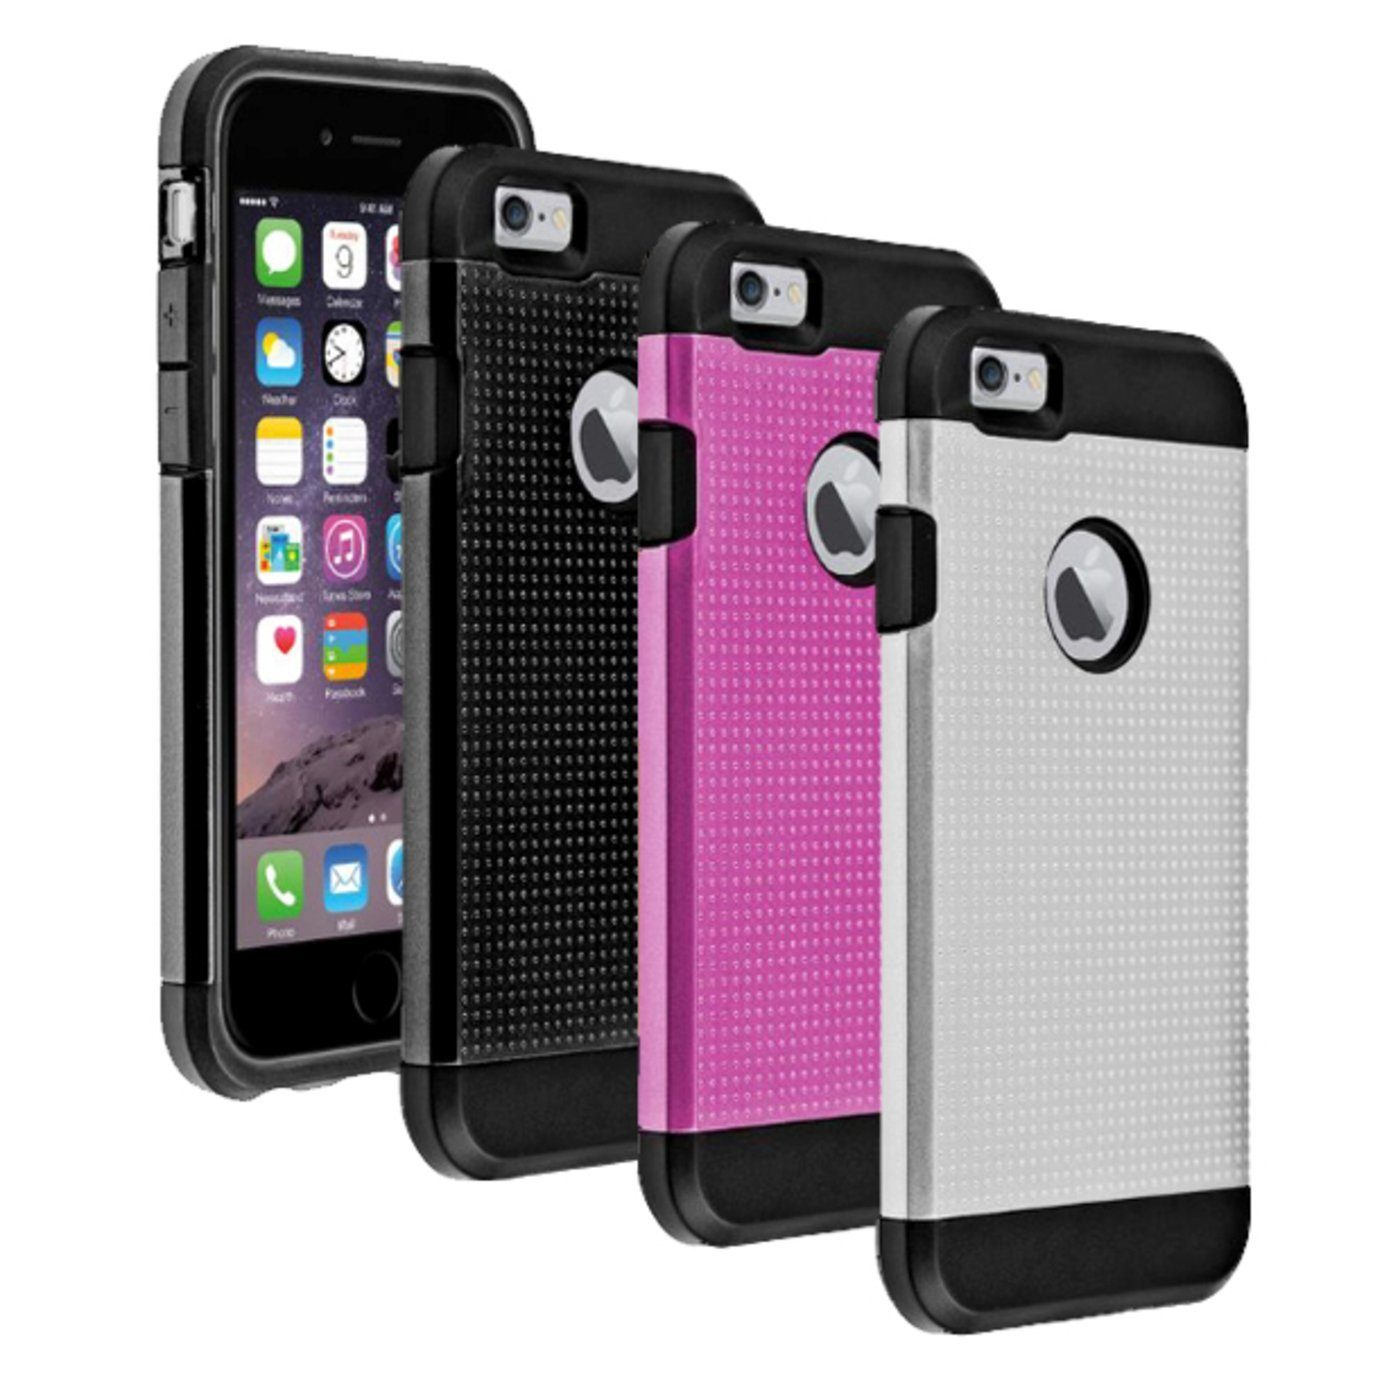 TOCCs iPhone 6 Defender Cases ONLY $4.99 SHIPPED (was $25)!